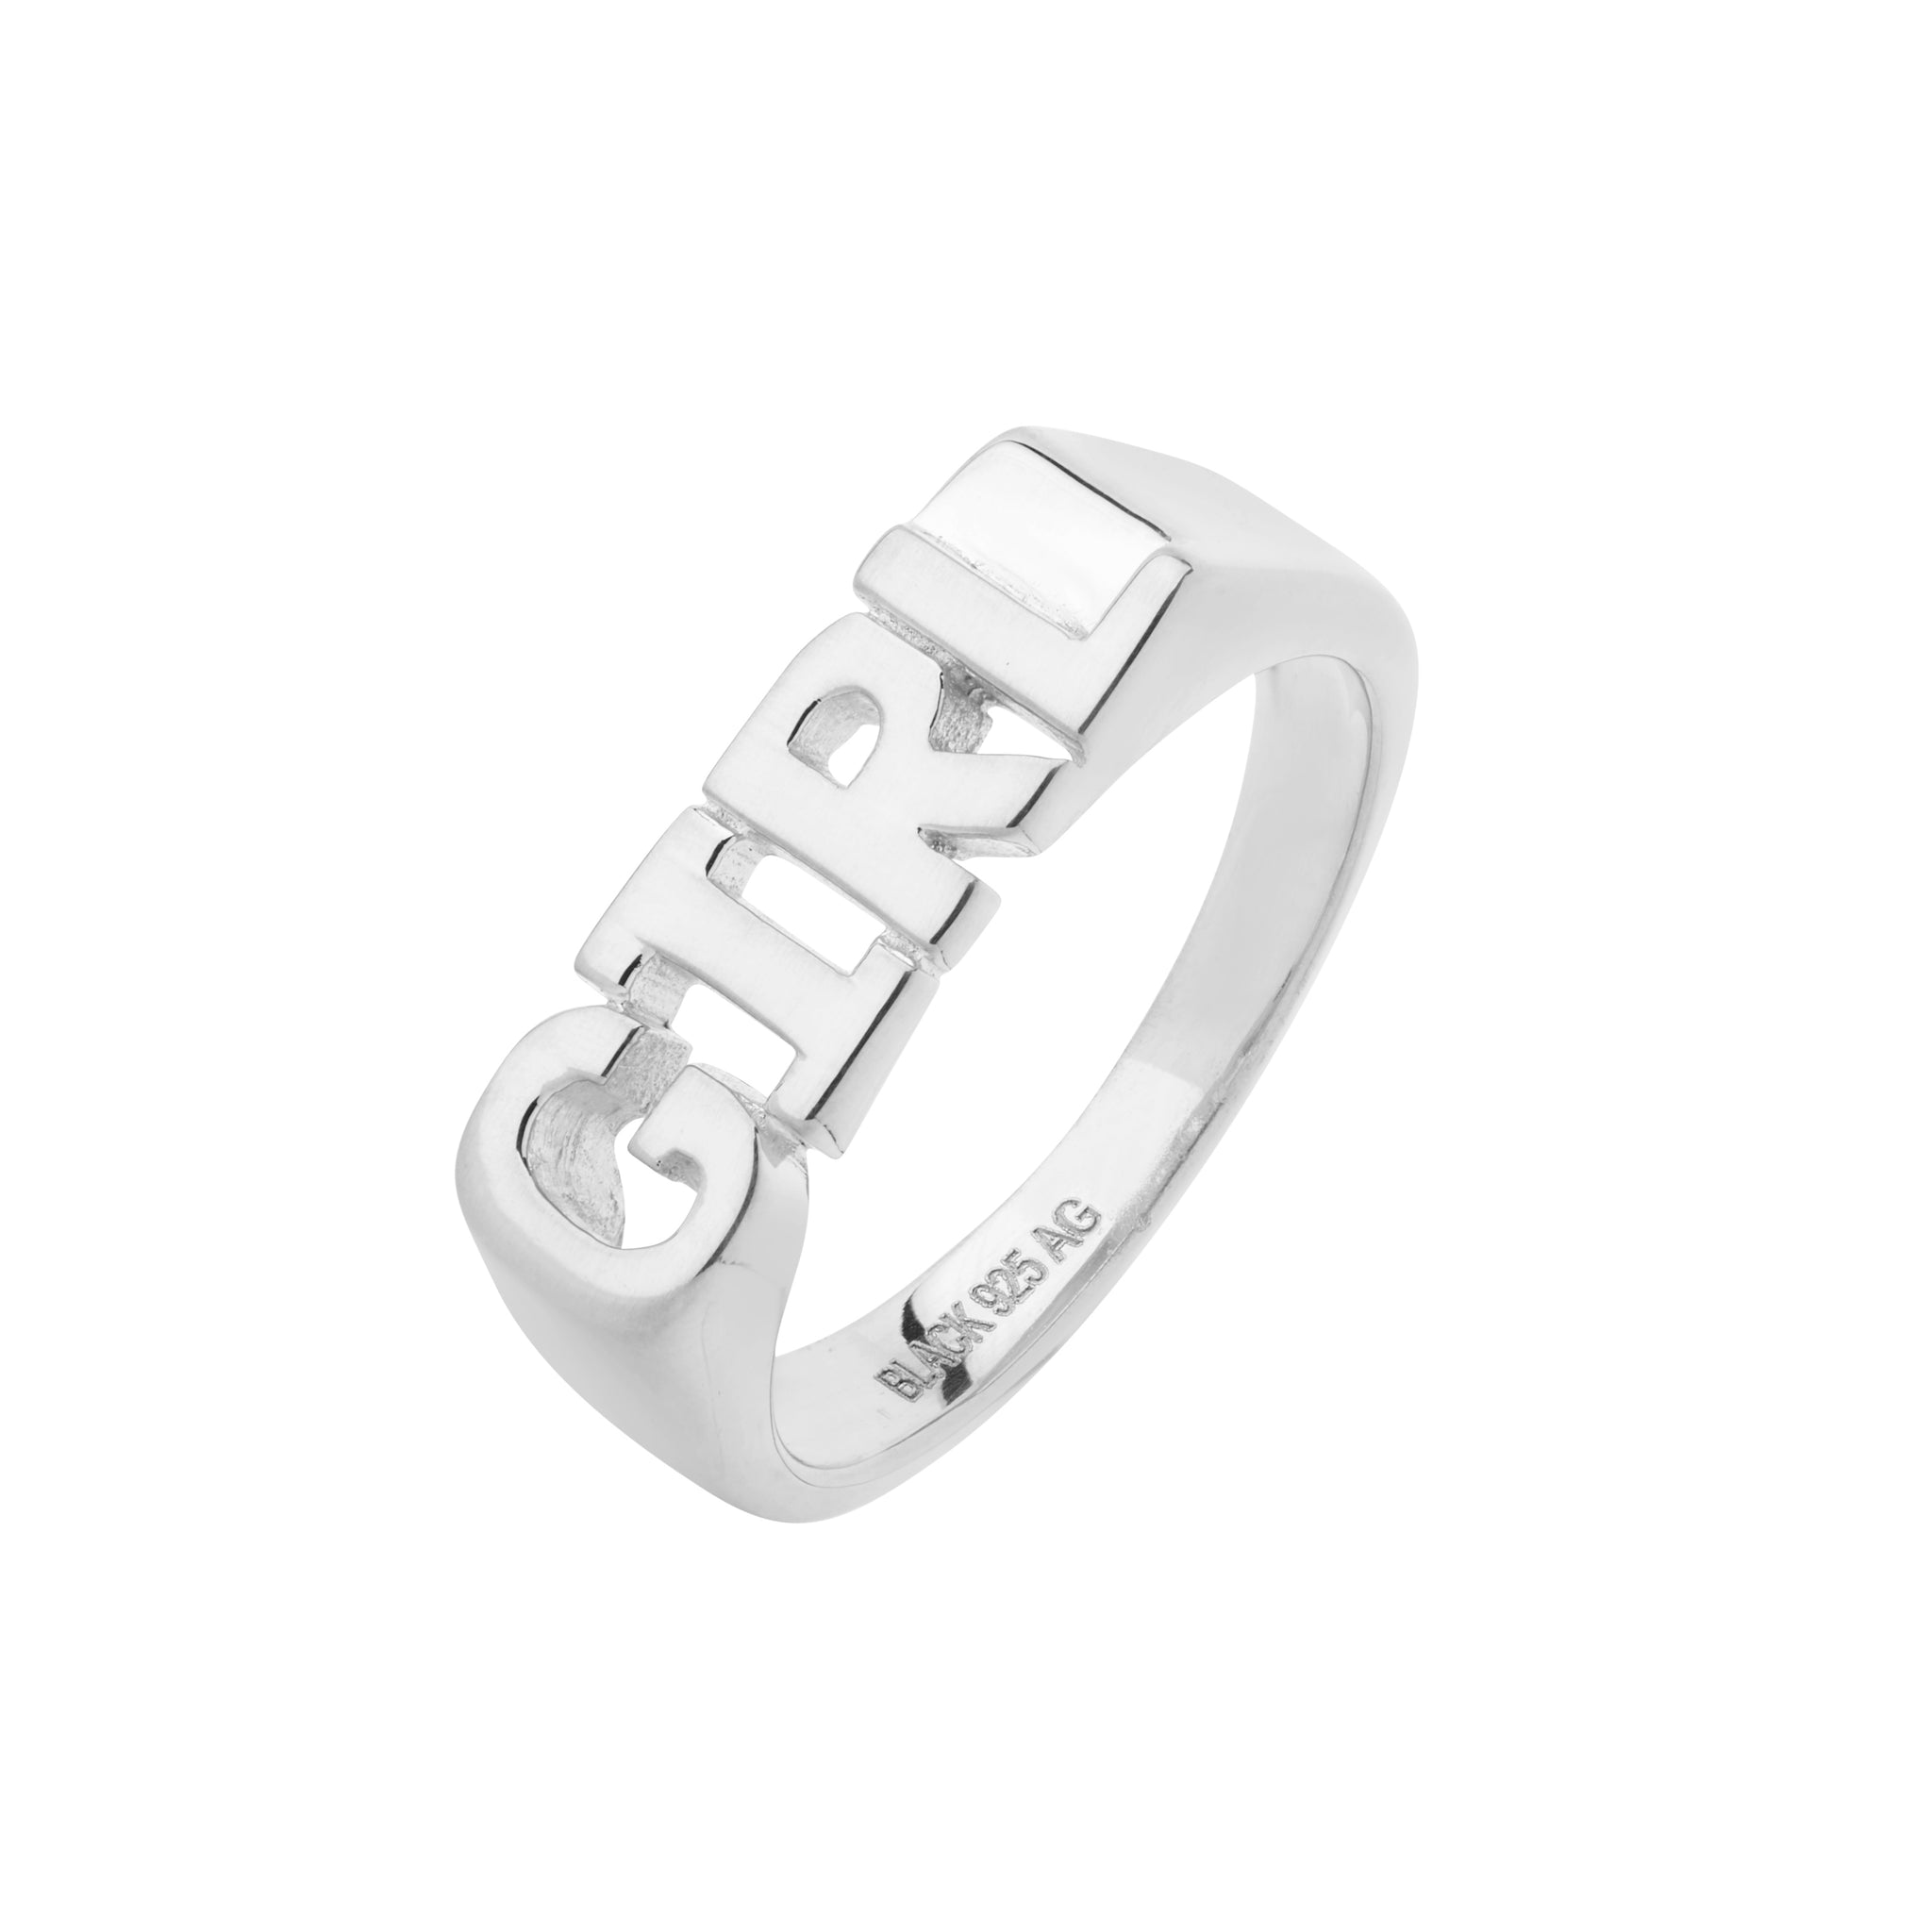 MARIA BLACK Girl Ring, silver